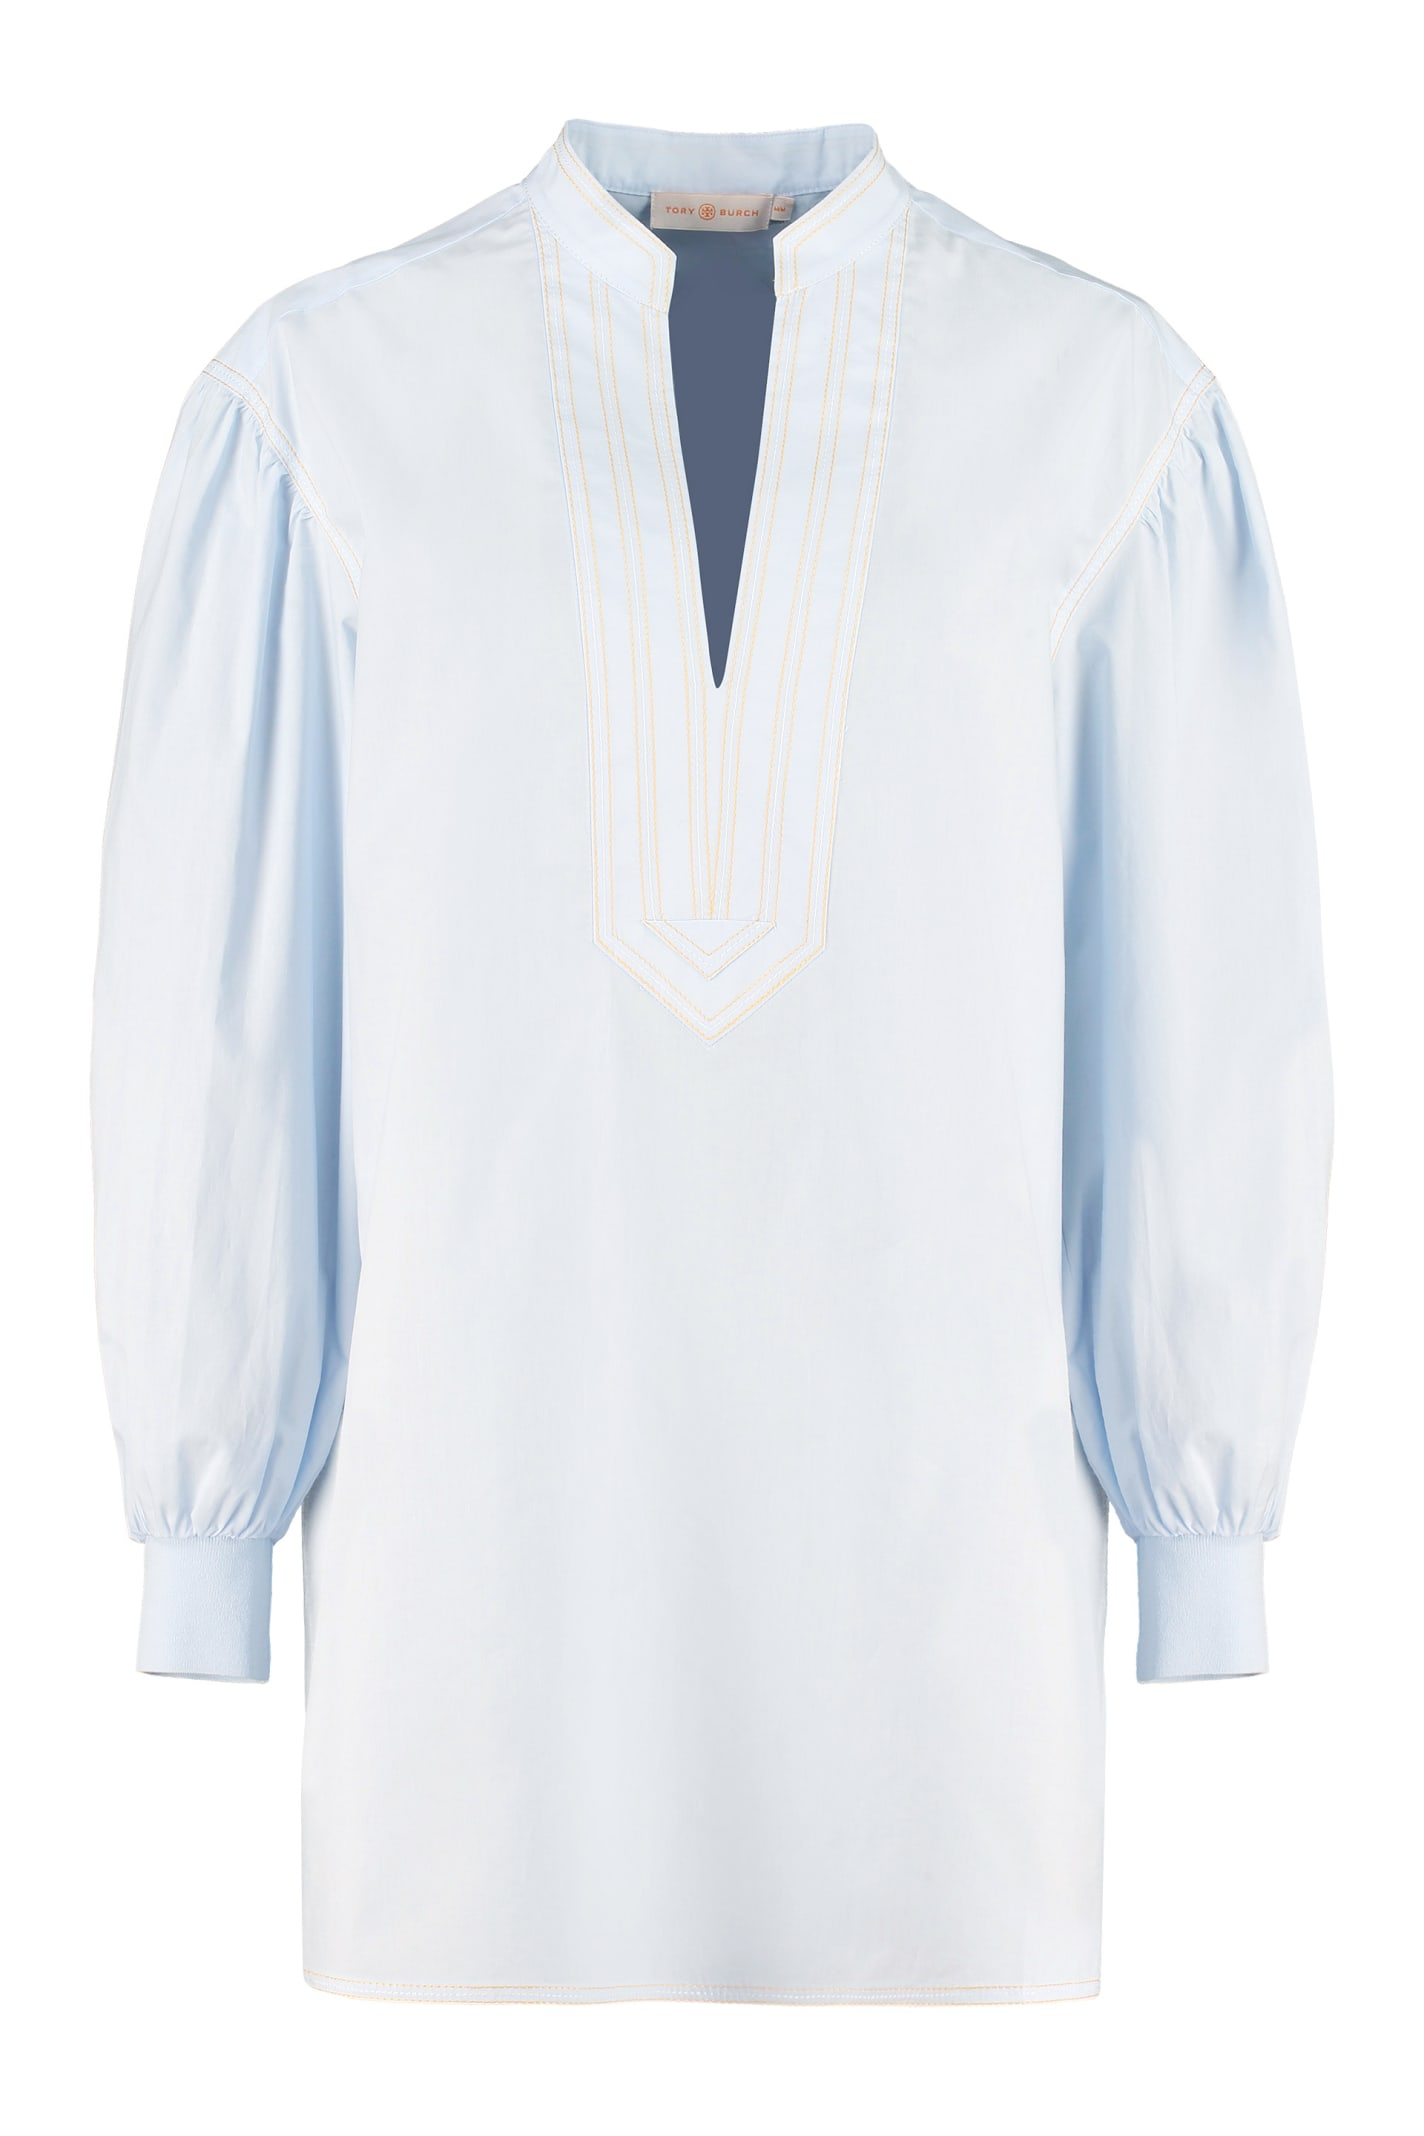 Tory Burch COTTON TUNIC-TOP